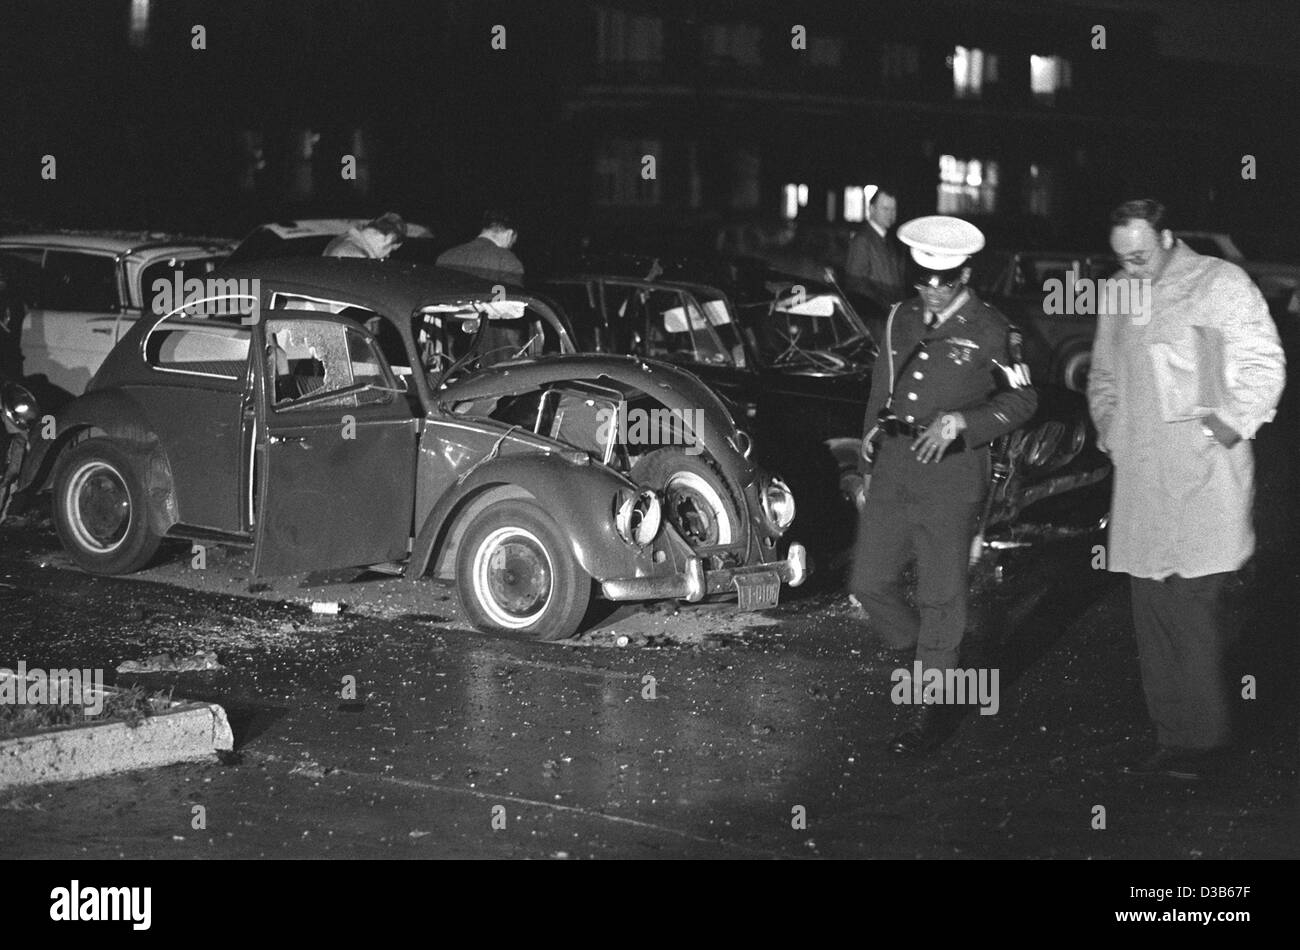 (dpa files) - A German police officer and an officer of the US military police pictured in front of the wrecked - Stock Image